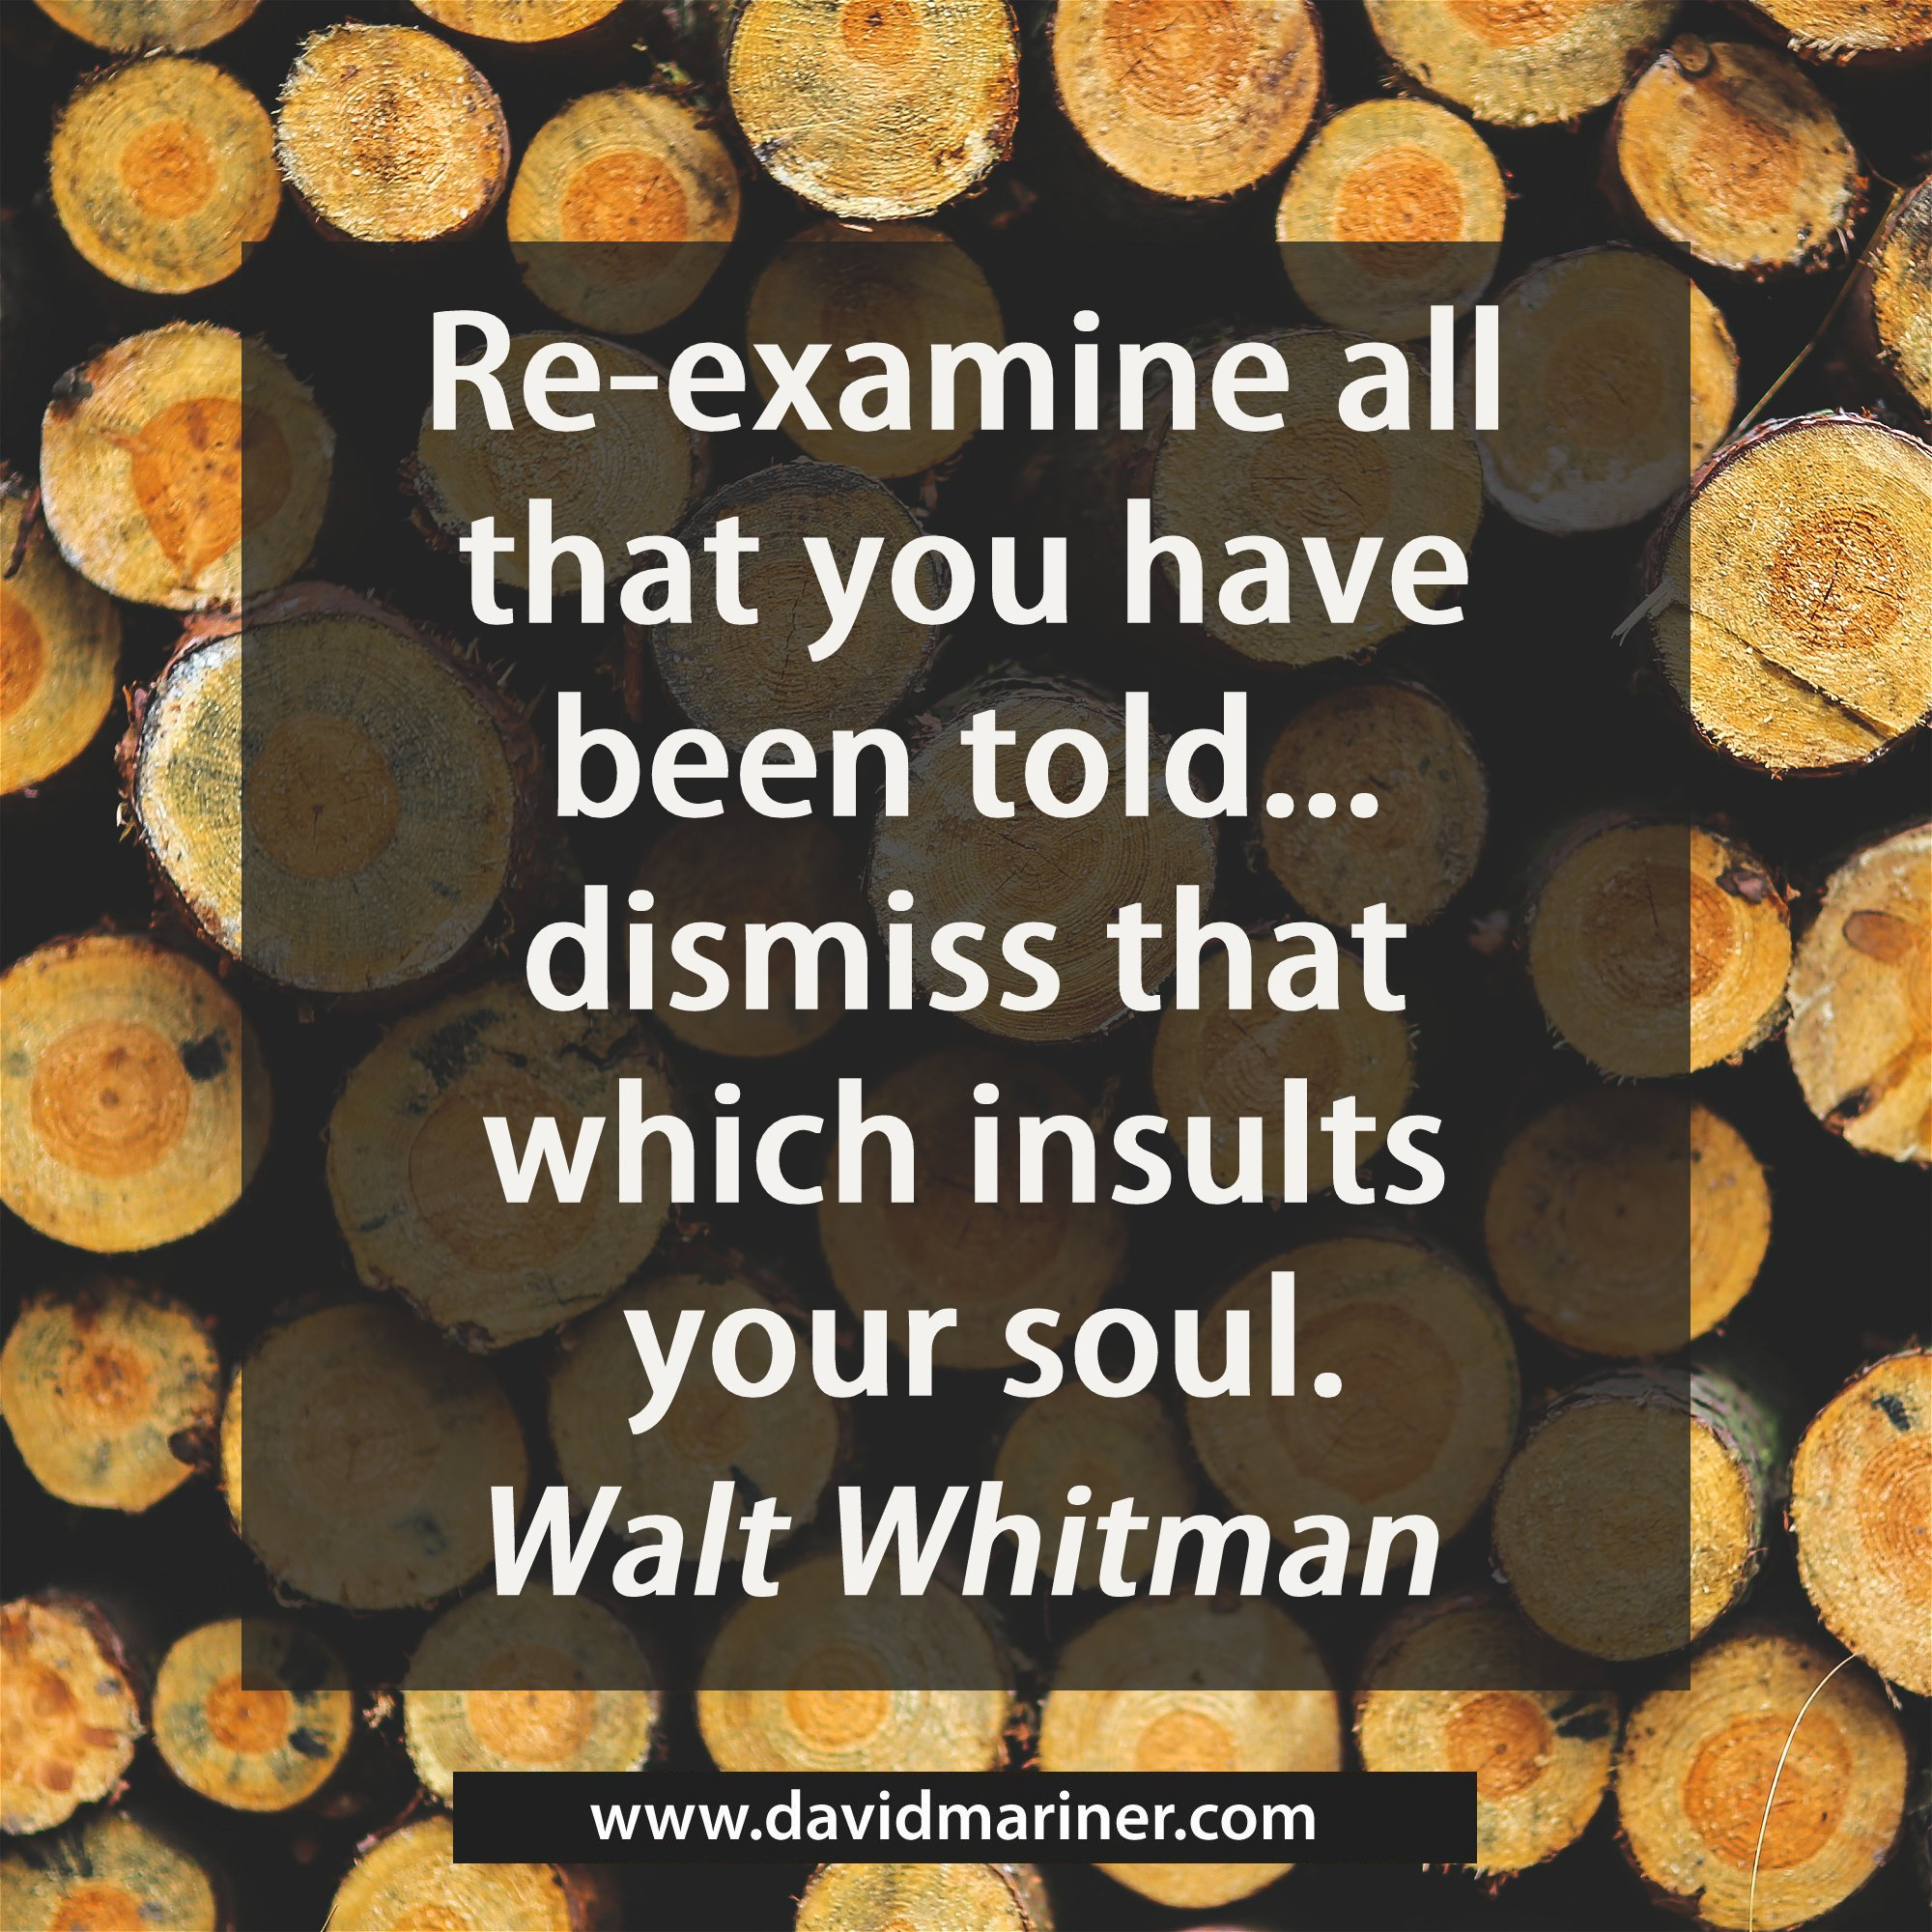 Re-examine all that you have been told...dismiss that which insults your soul. - Walt Whitman